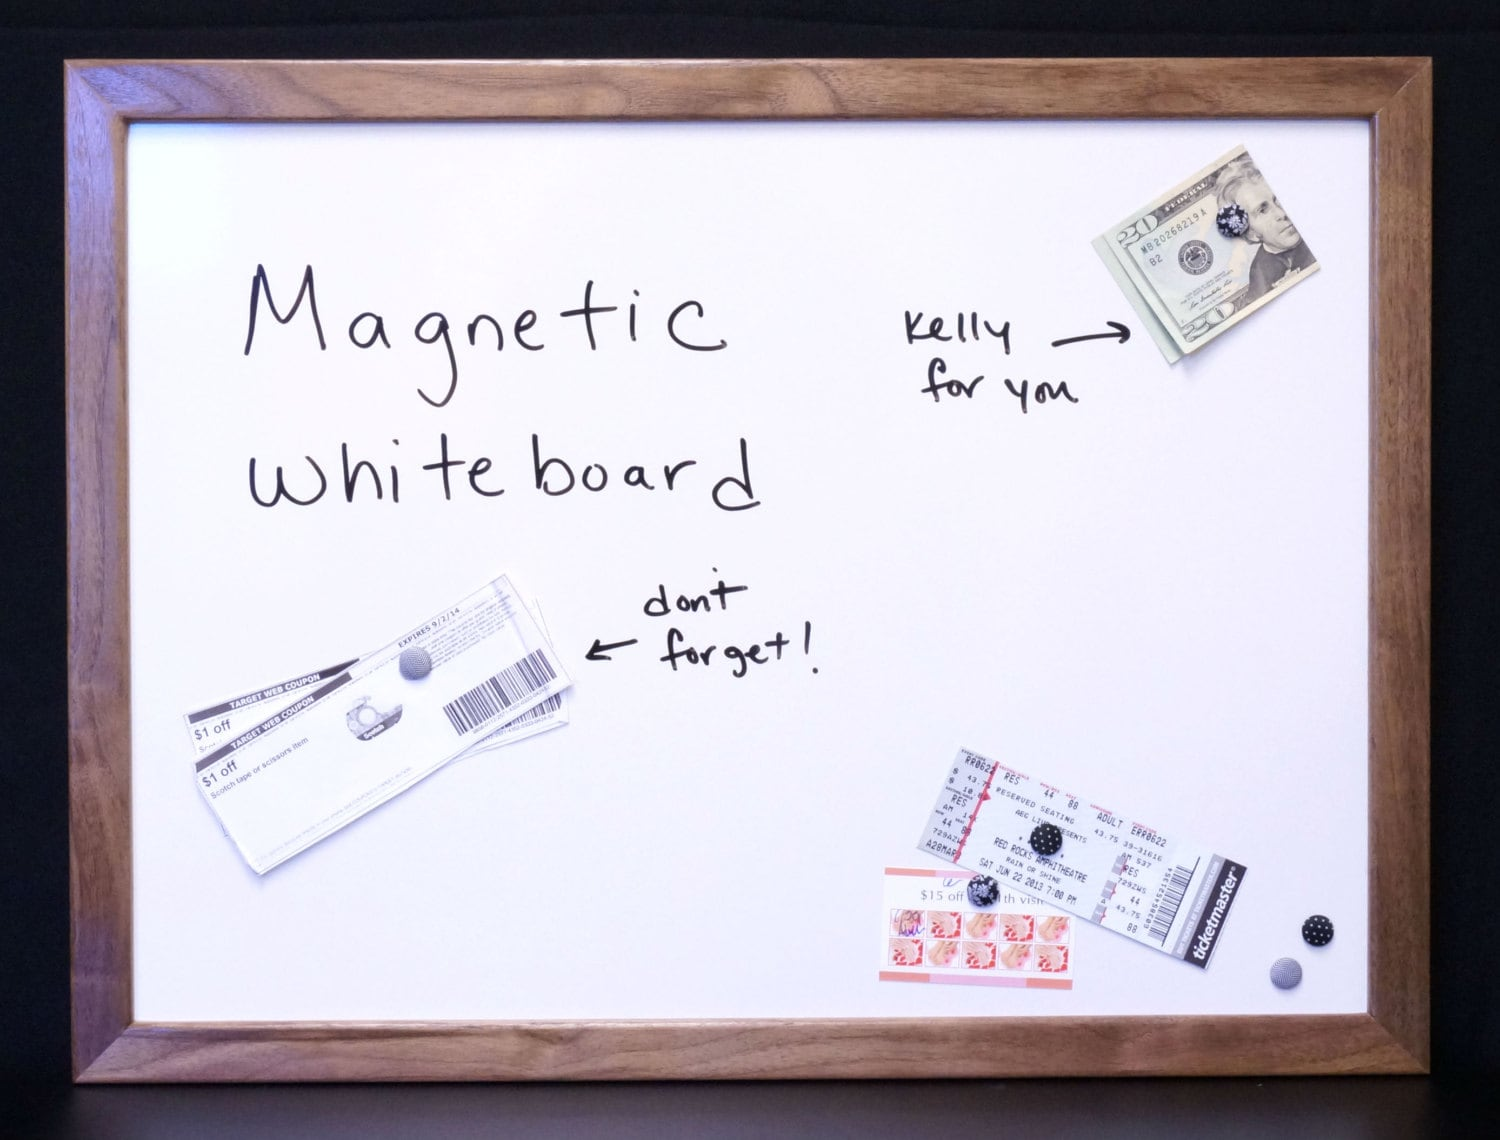 Magnetic craft board - 18 X24 Magnetic Dry Erase Board Magnetic Whiteboard Solid Wood Framed Message